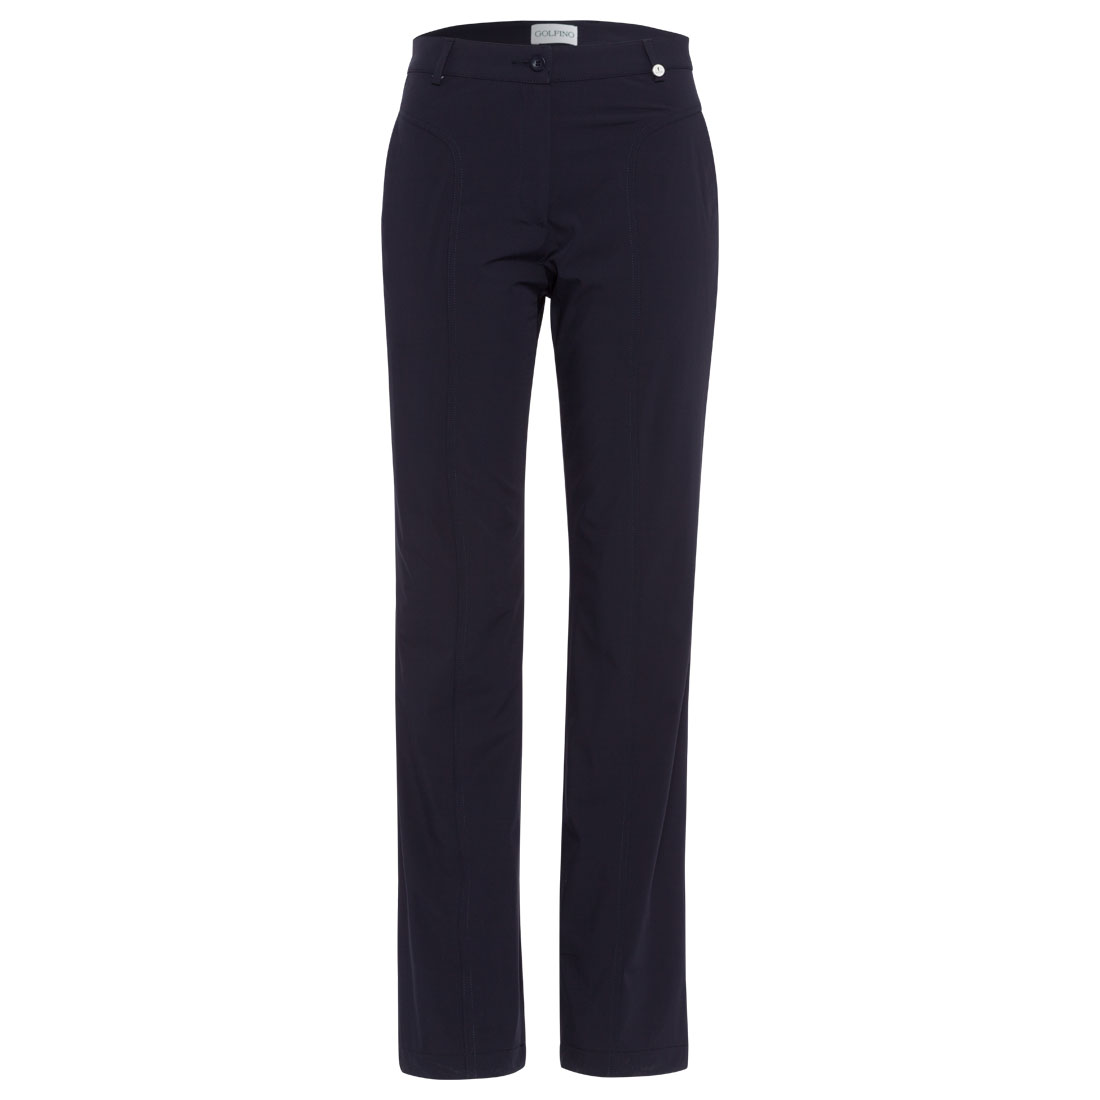 Water-resistant ladies' Thermo Stretch golf trousers in regular fit